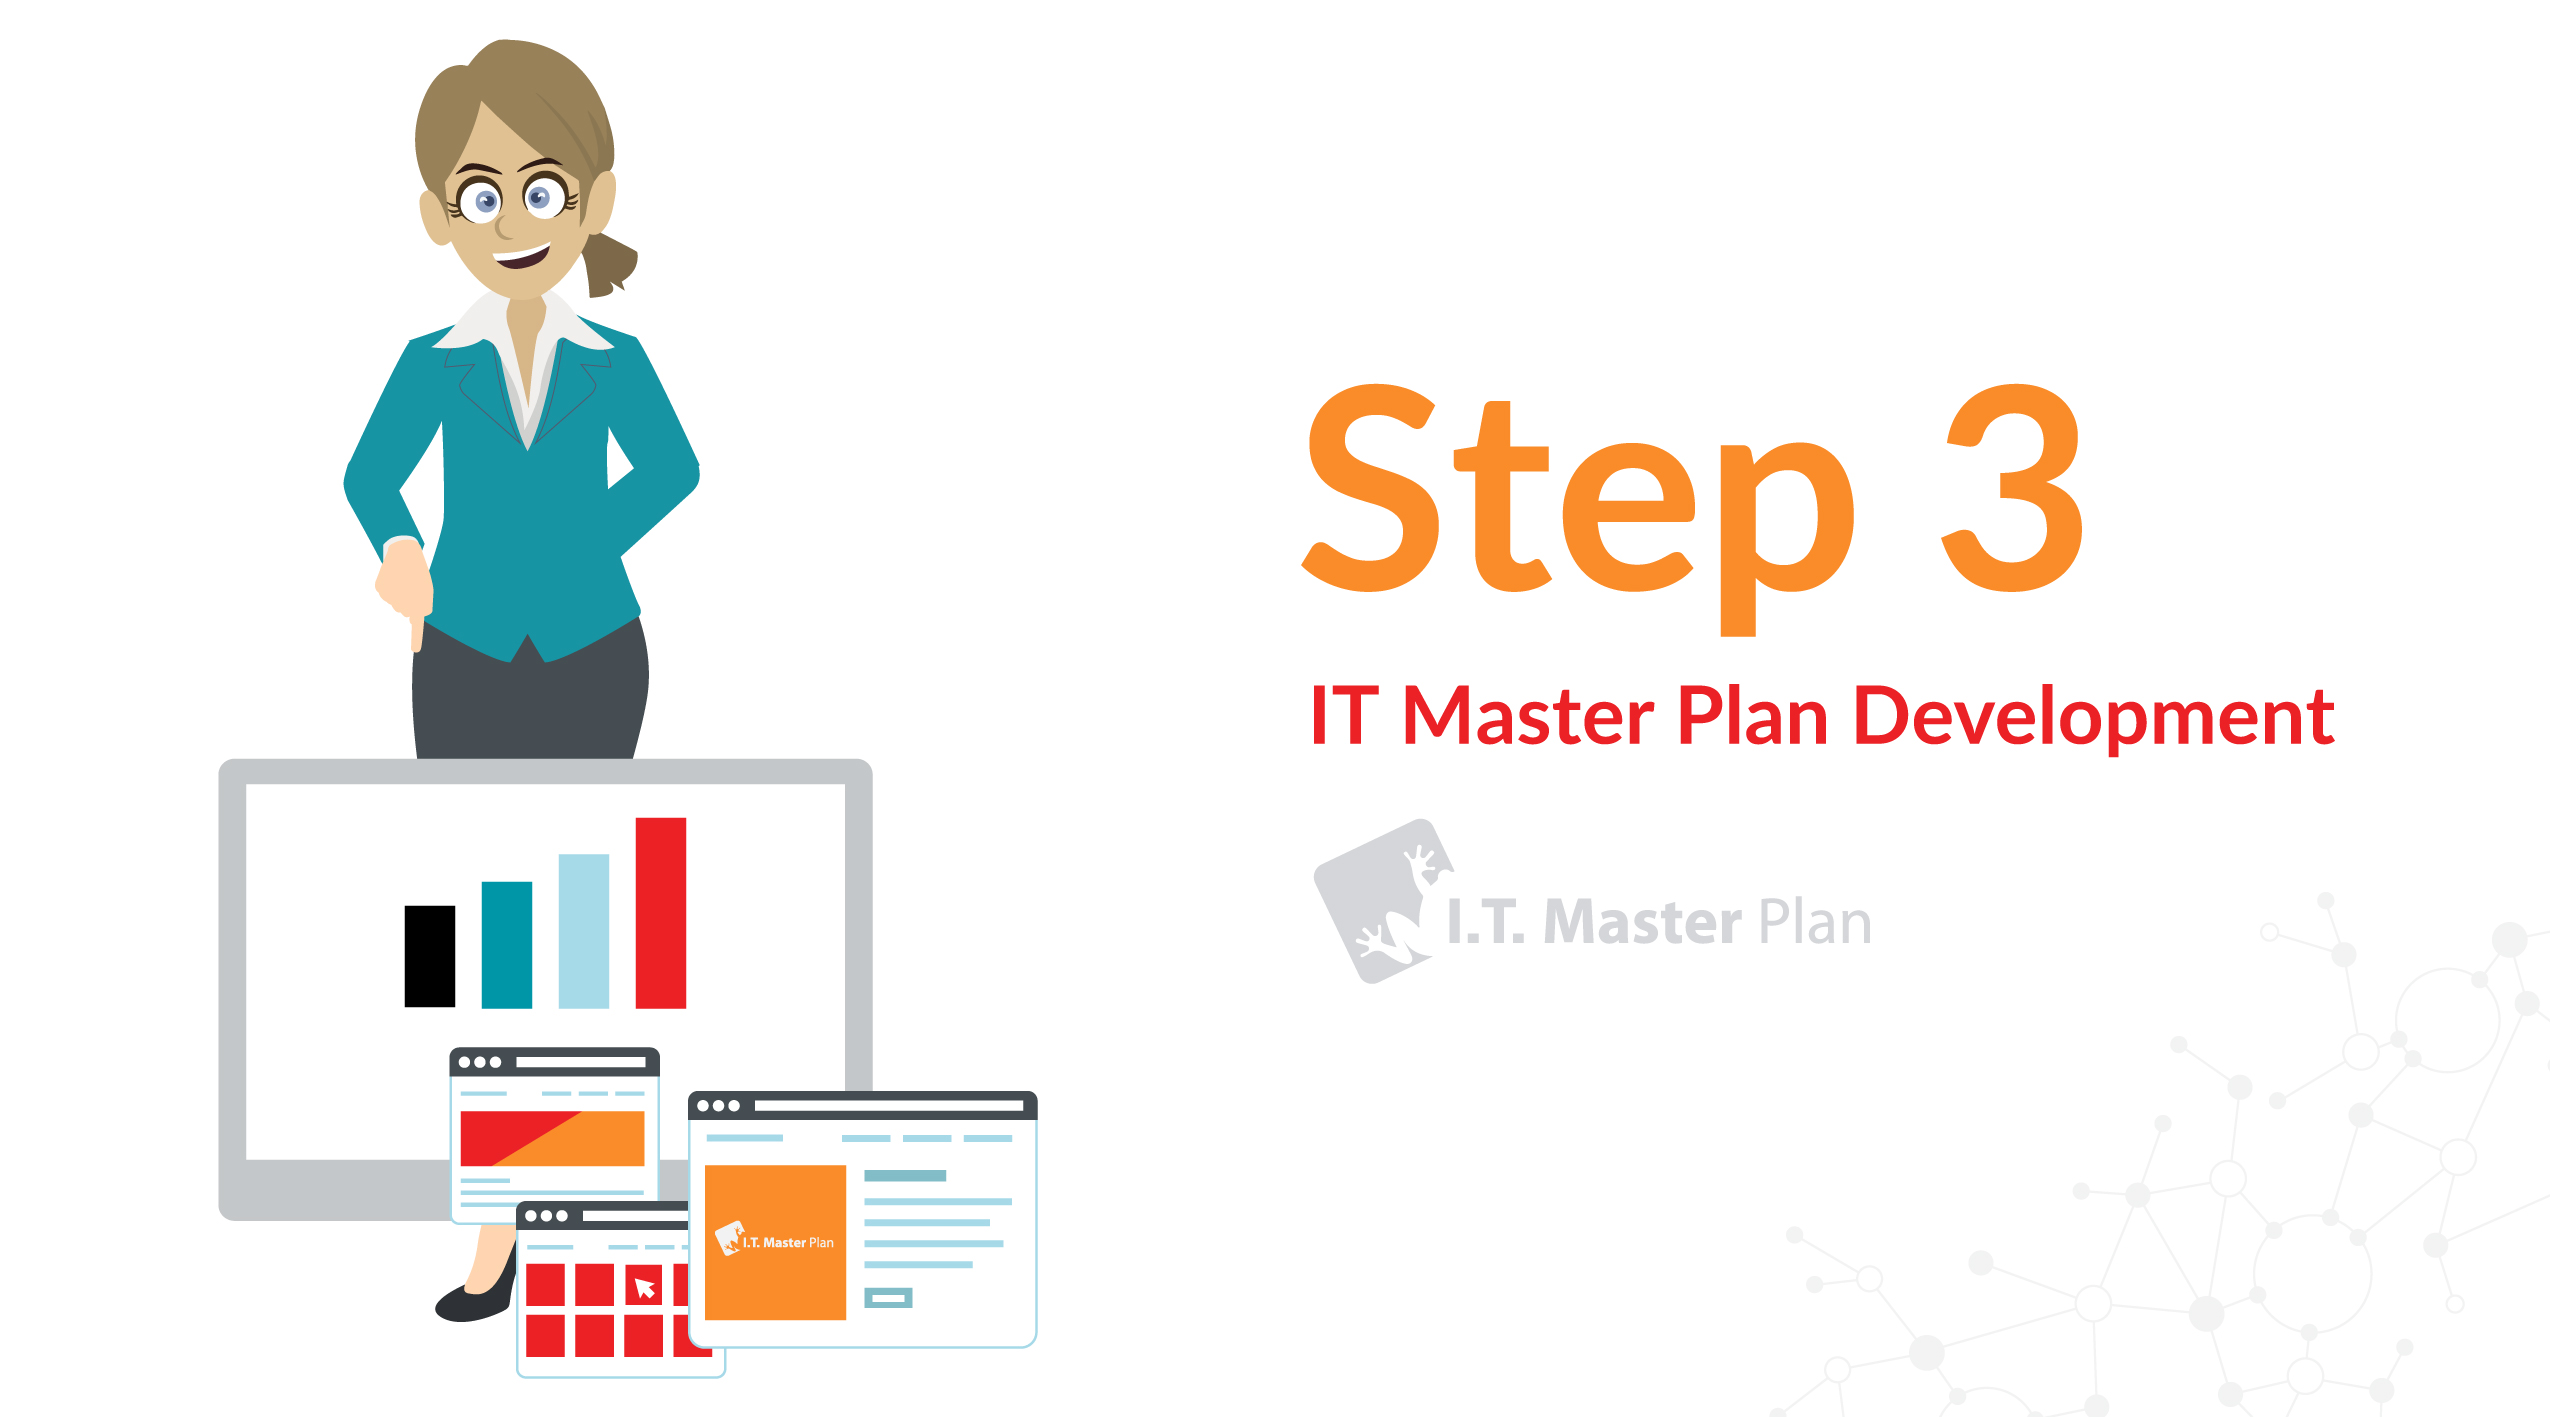 Cyber Security and IT Master Plan Development